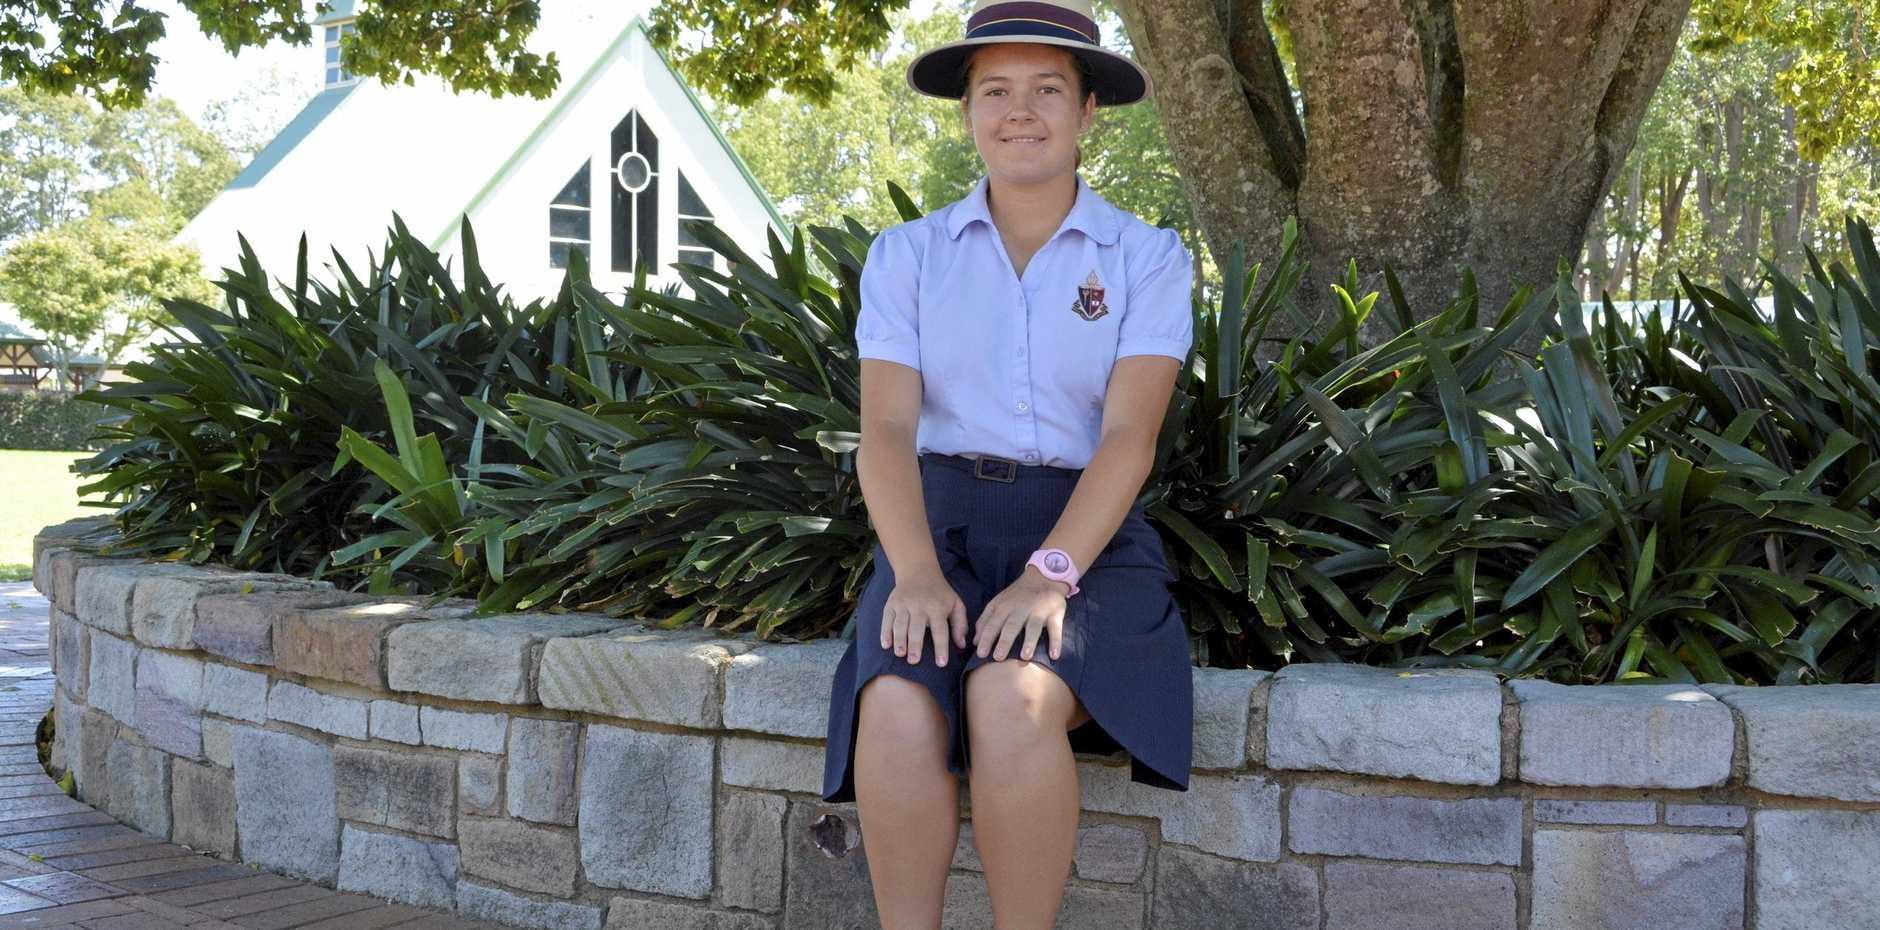 Kam Dunemann was back at school this week after her dual golf championship victories.